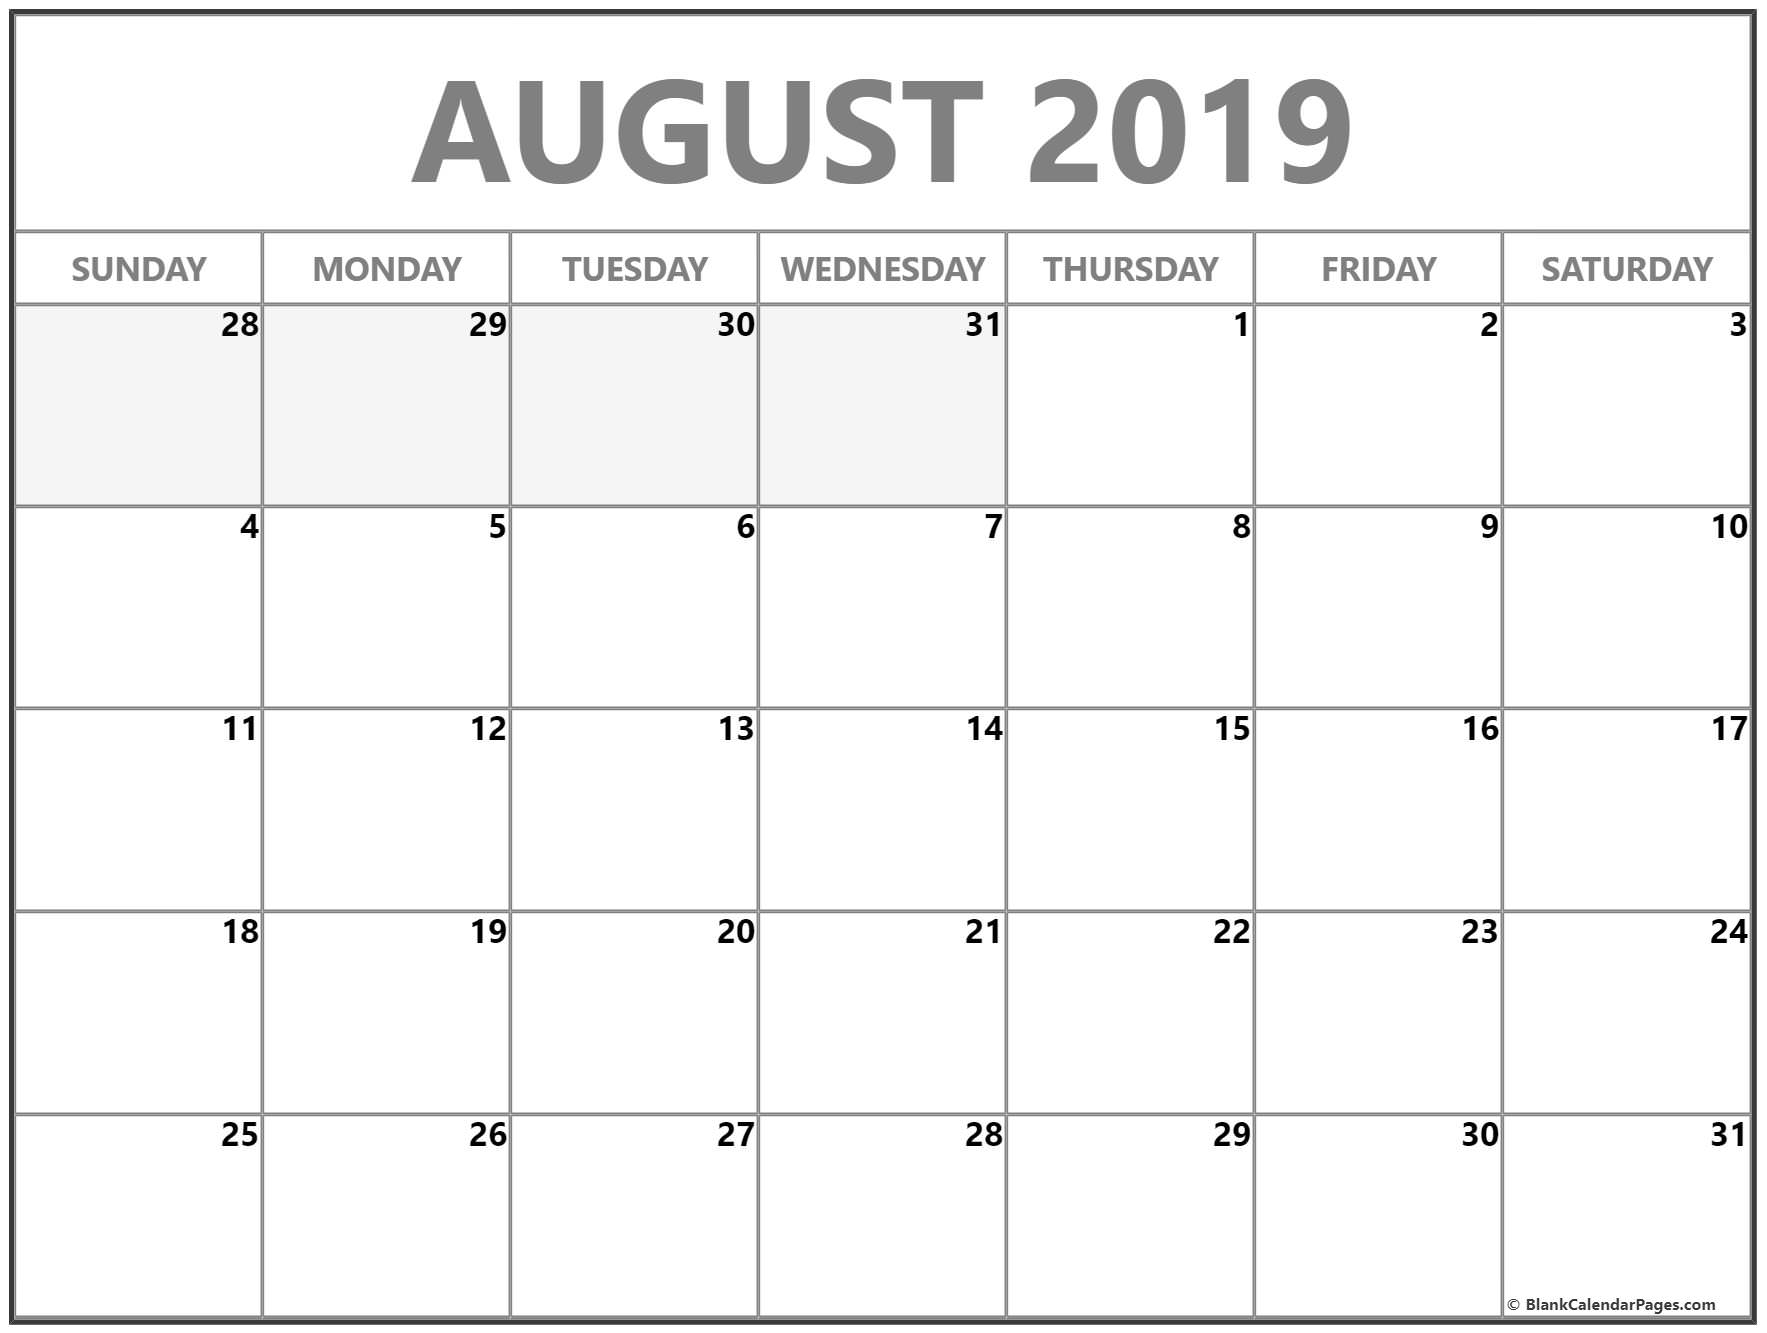 August 2019 Calendar   Free Printable Monthly Calendars regarding Printable Monthly Calendar Templates August